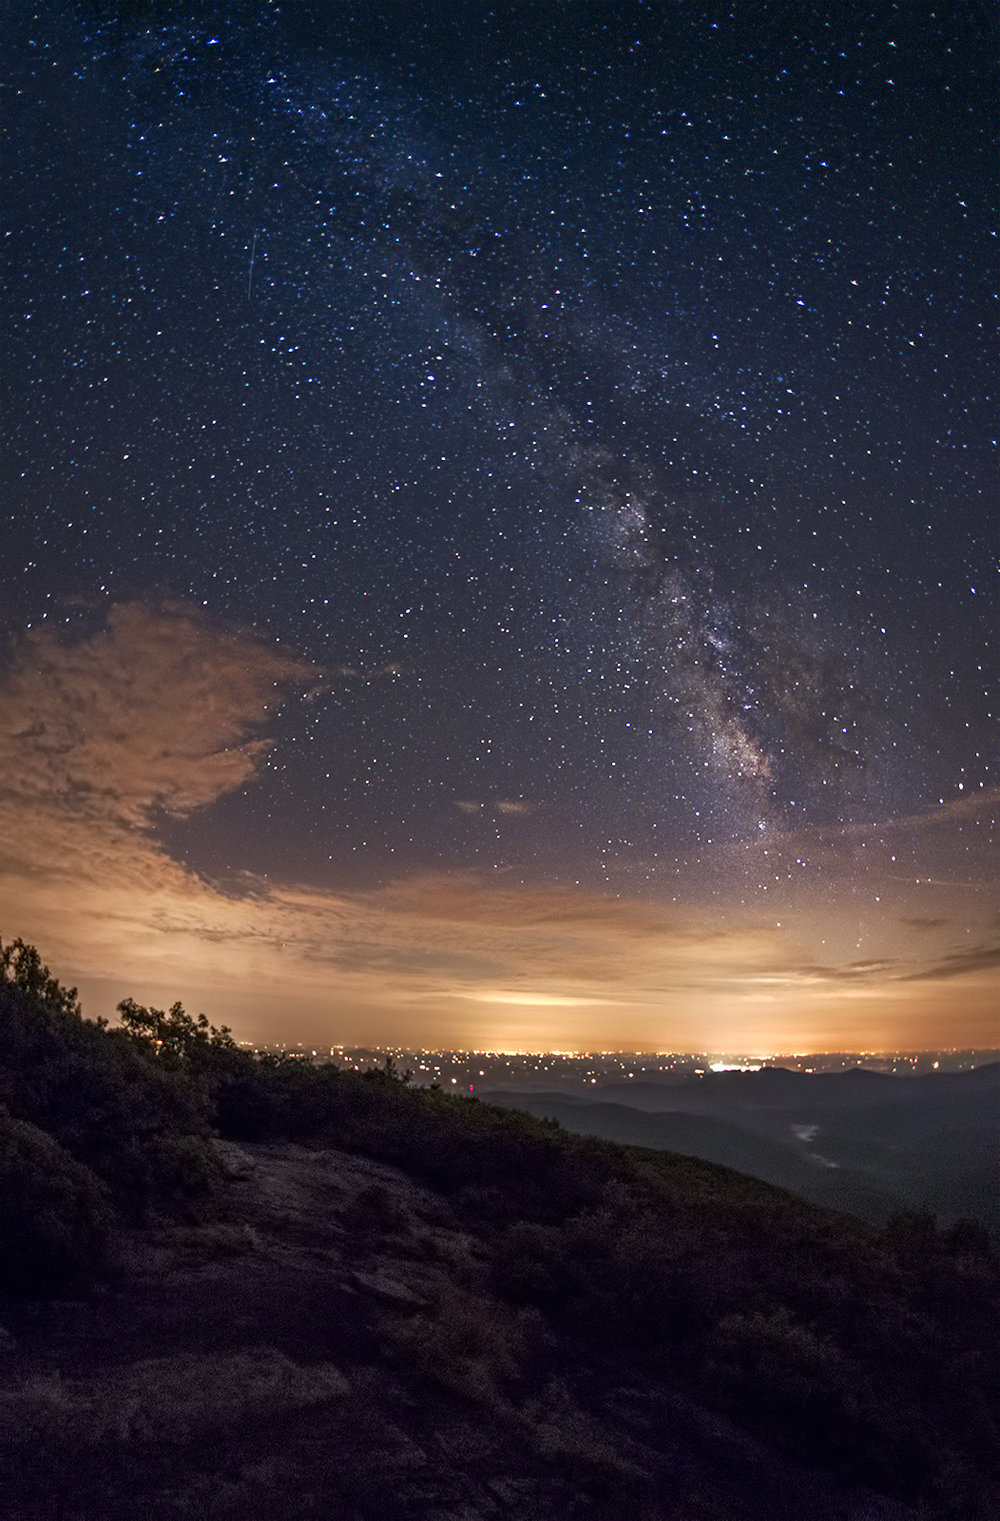 Milkyway-Blood-Mountain-Fisheye-Pano.jpg